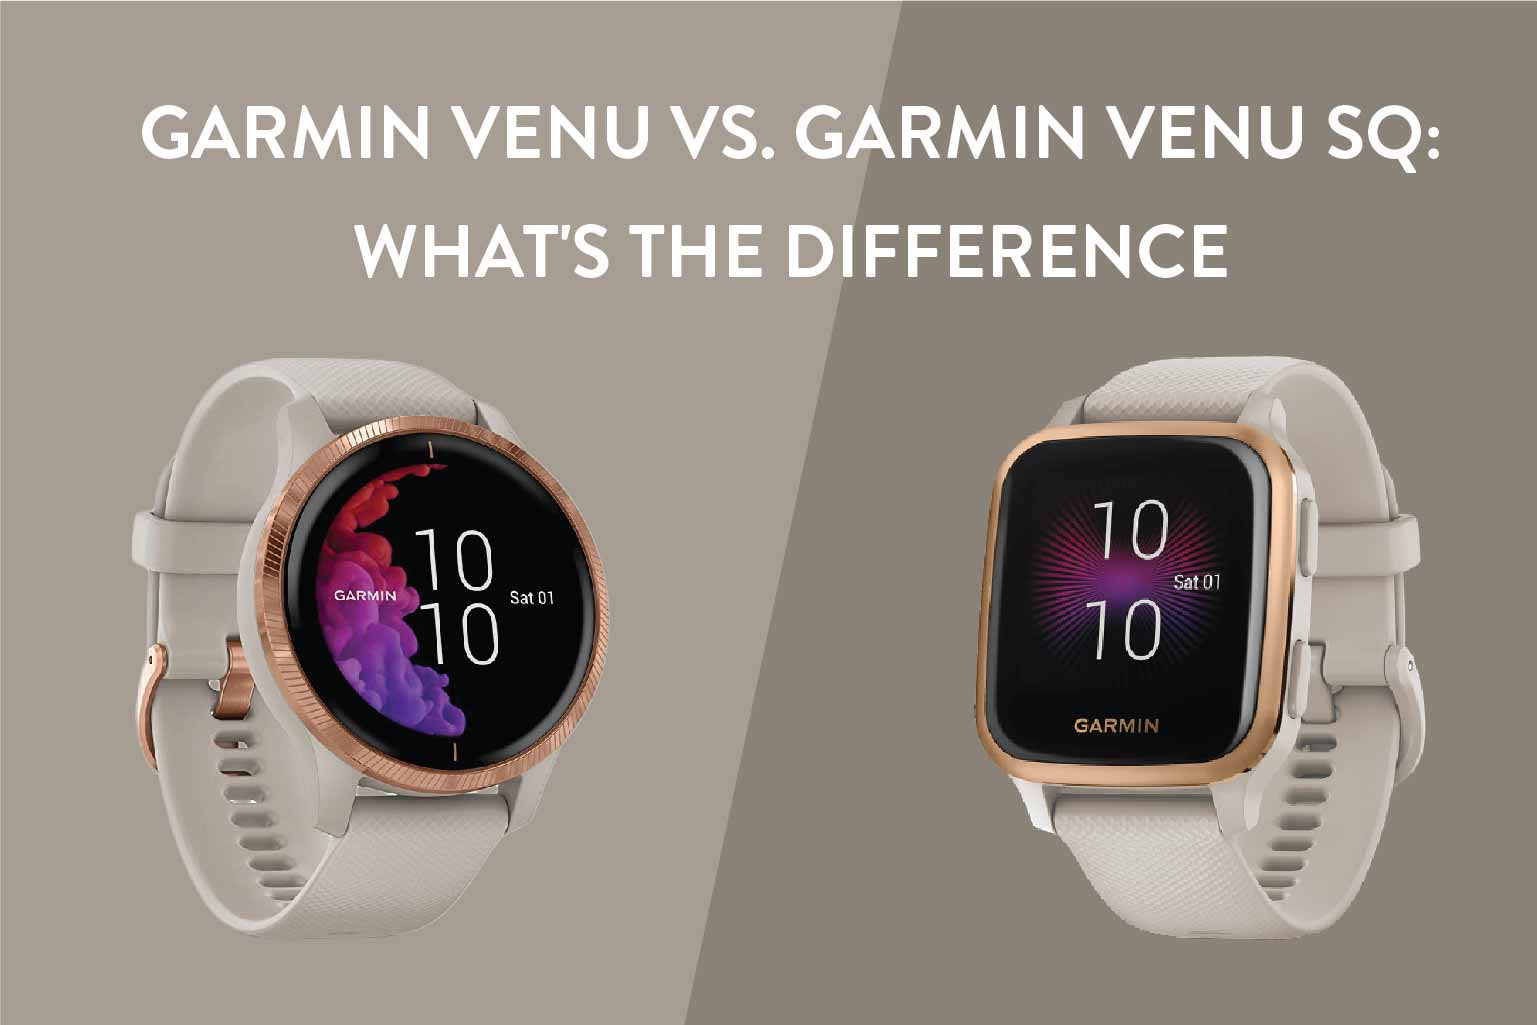 Garmin Venu vs. Garmin Venu Sq: What's The Difference